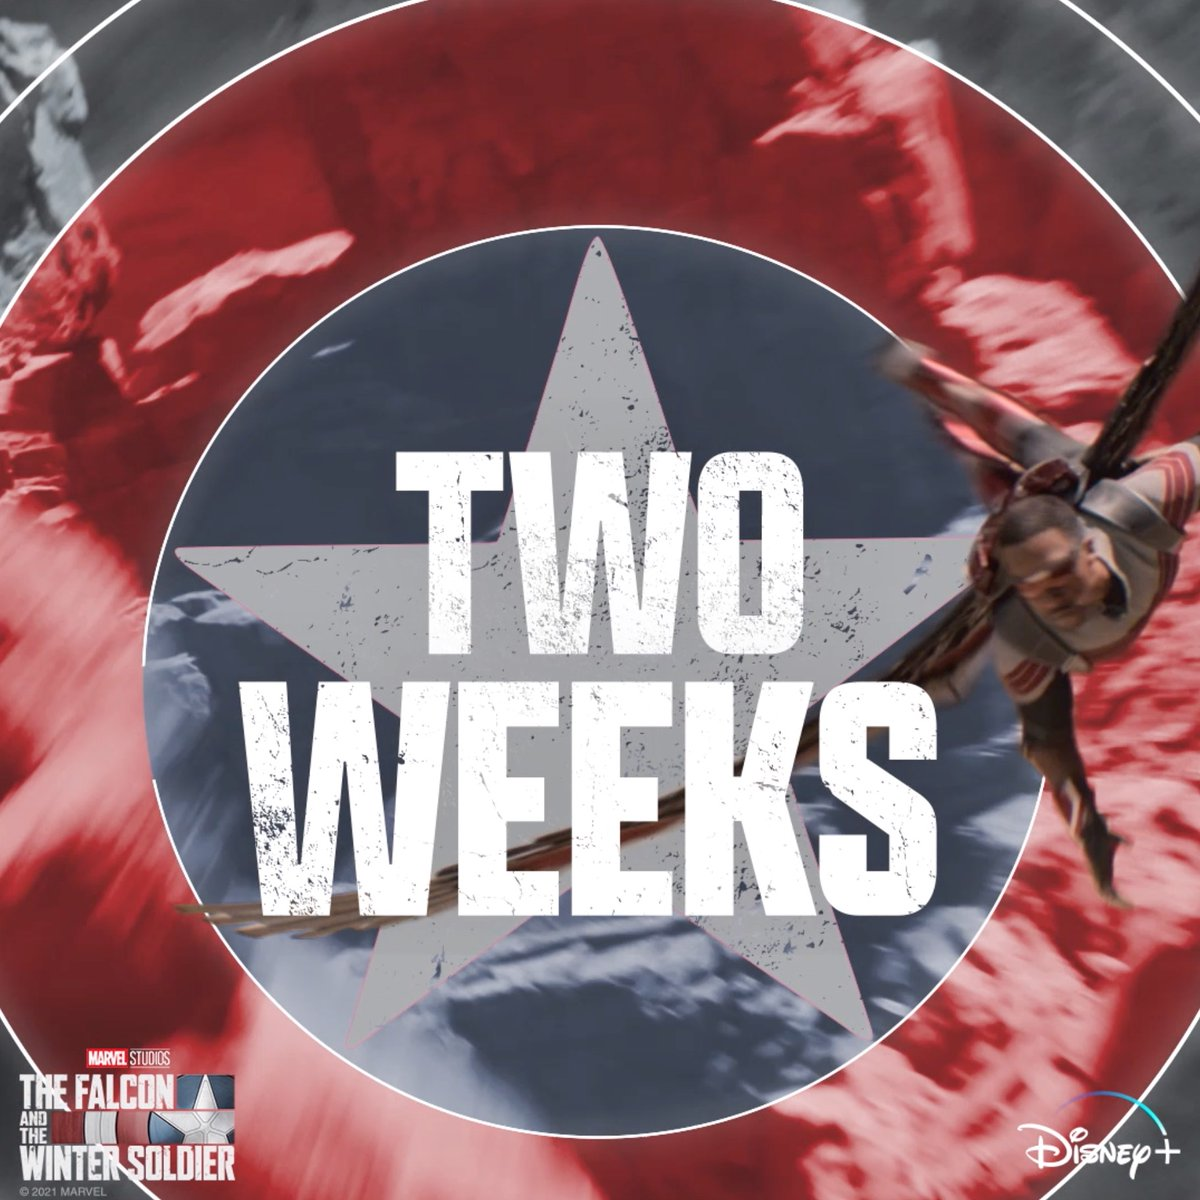 Replying to @DiscussingFilm: 2 weeks until #TheFalconAndTheWinterSoldier premieres on Disney+